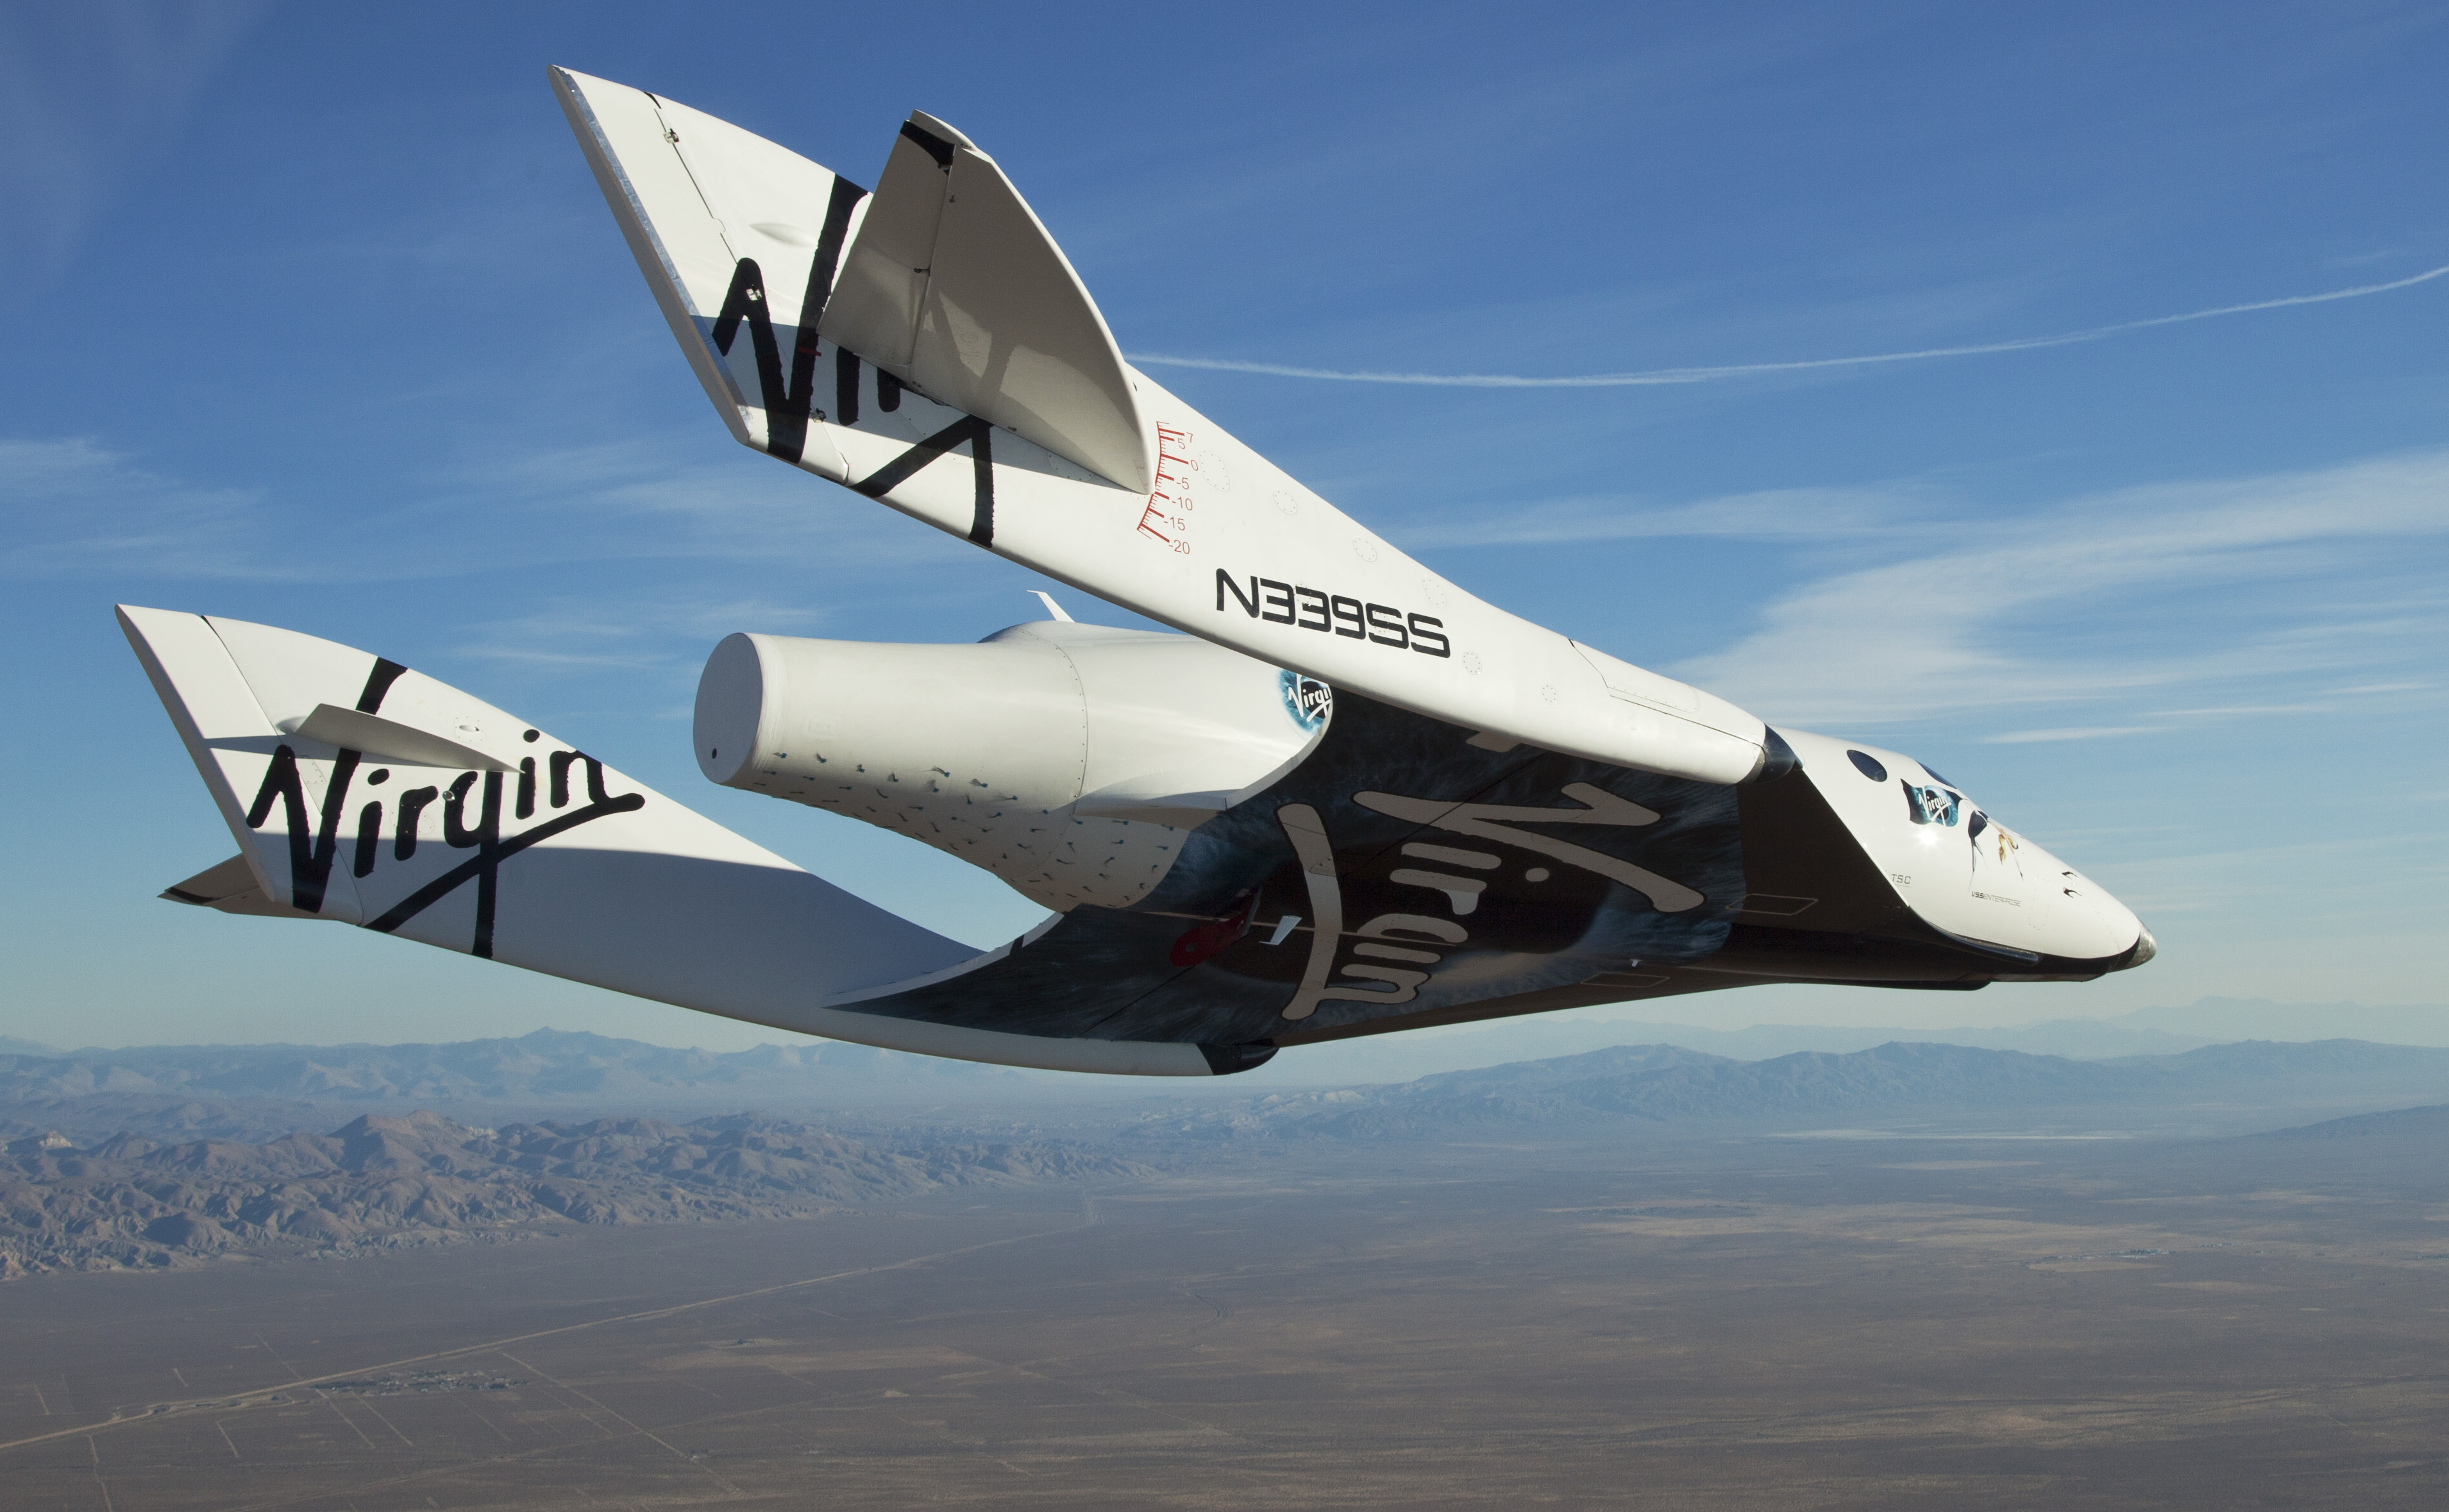 Space Ship Two Virgin Galactic